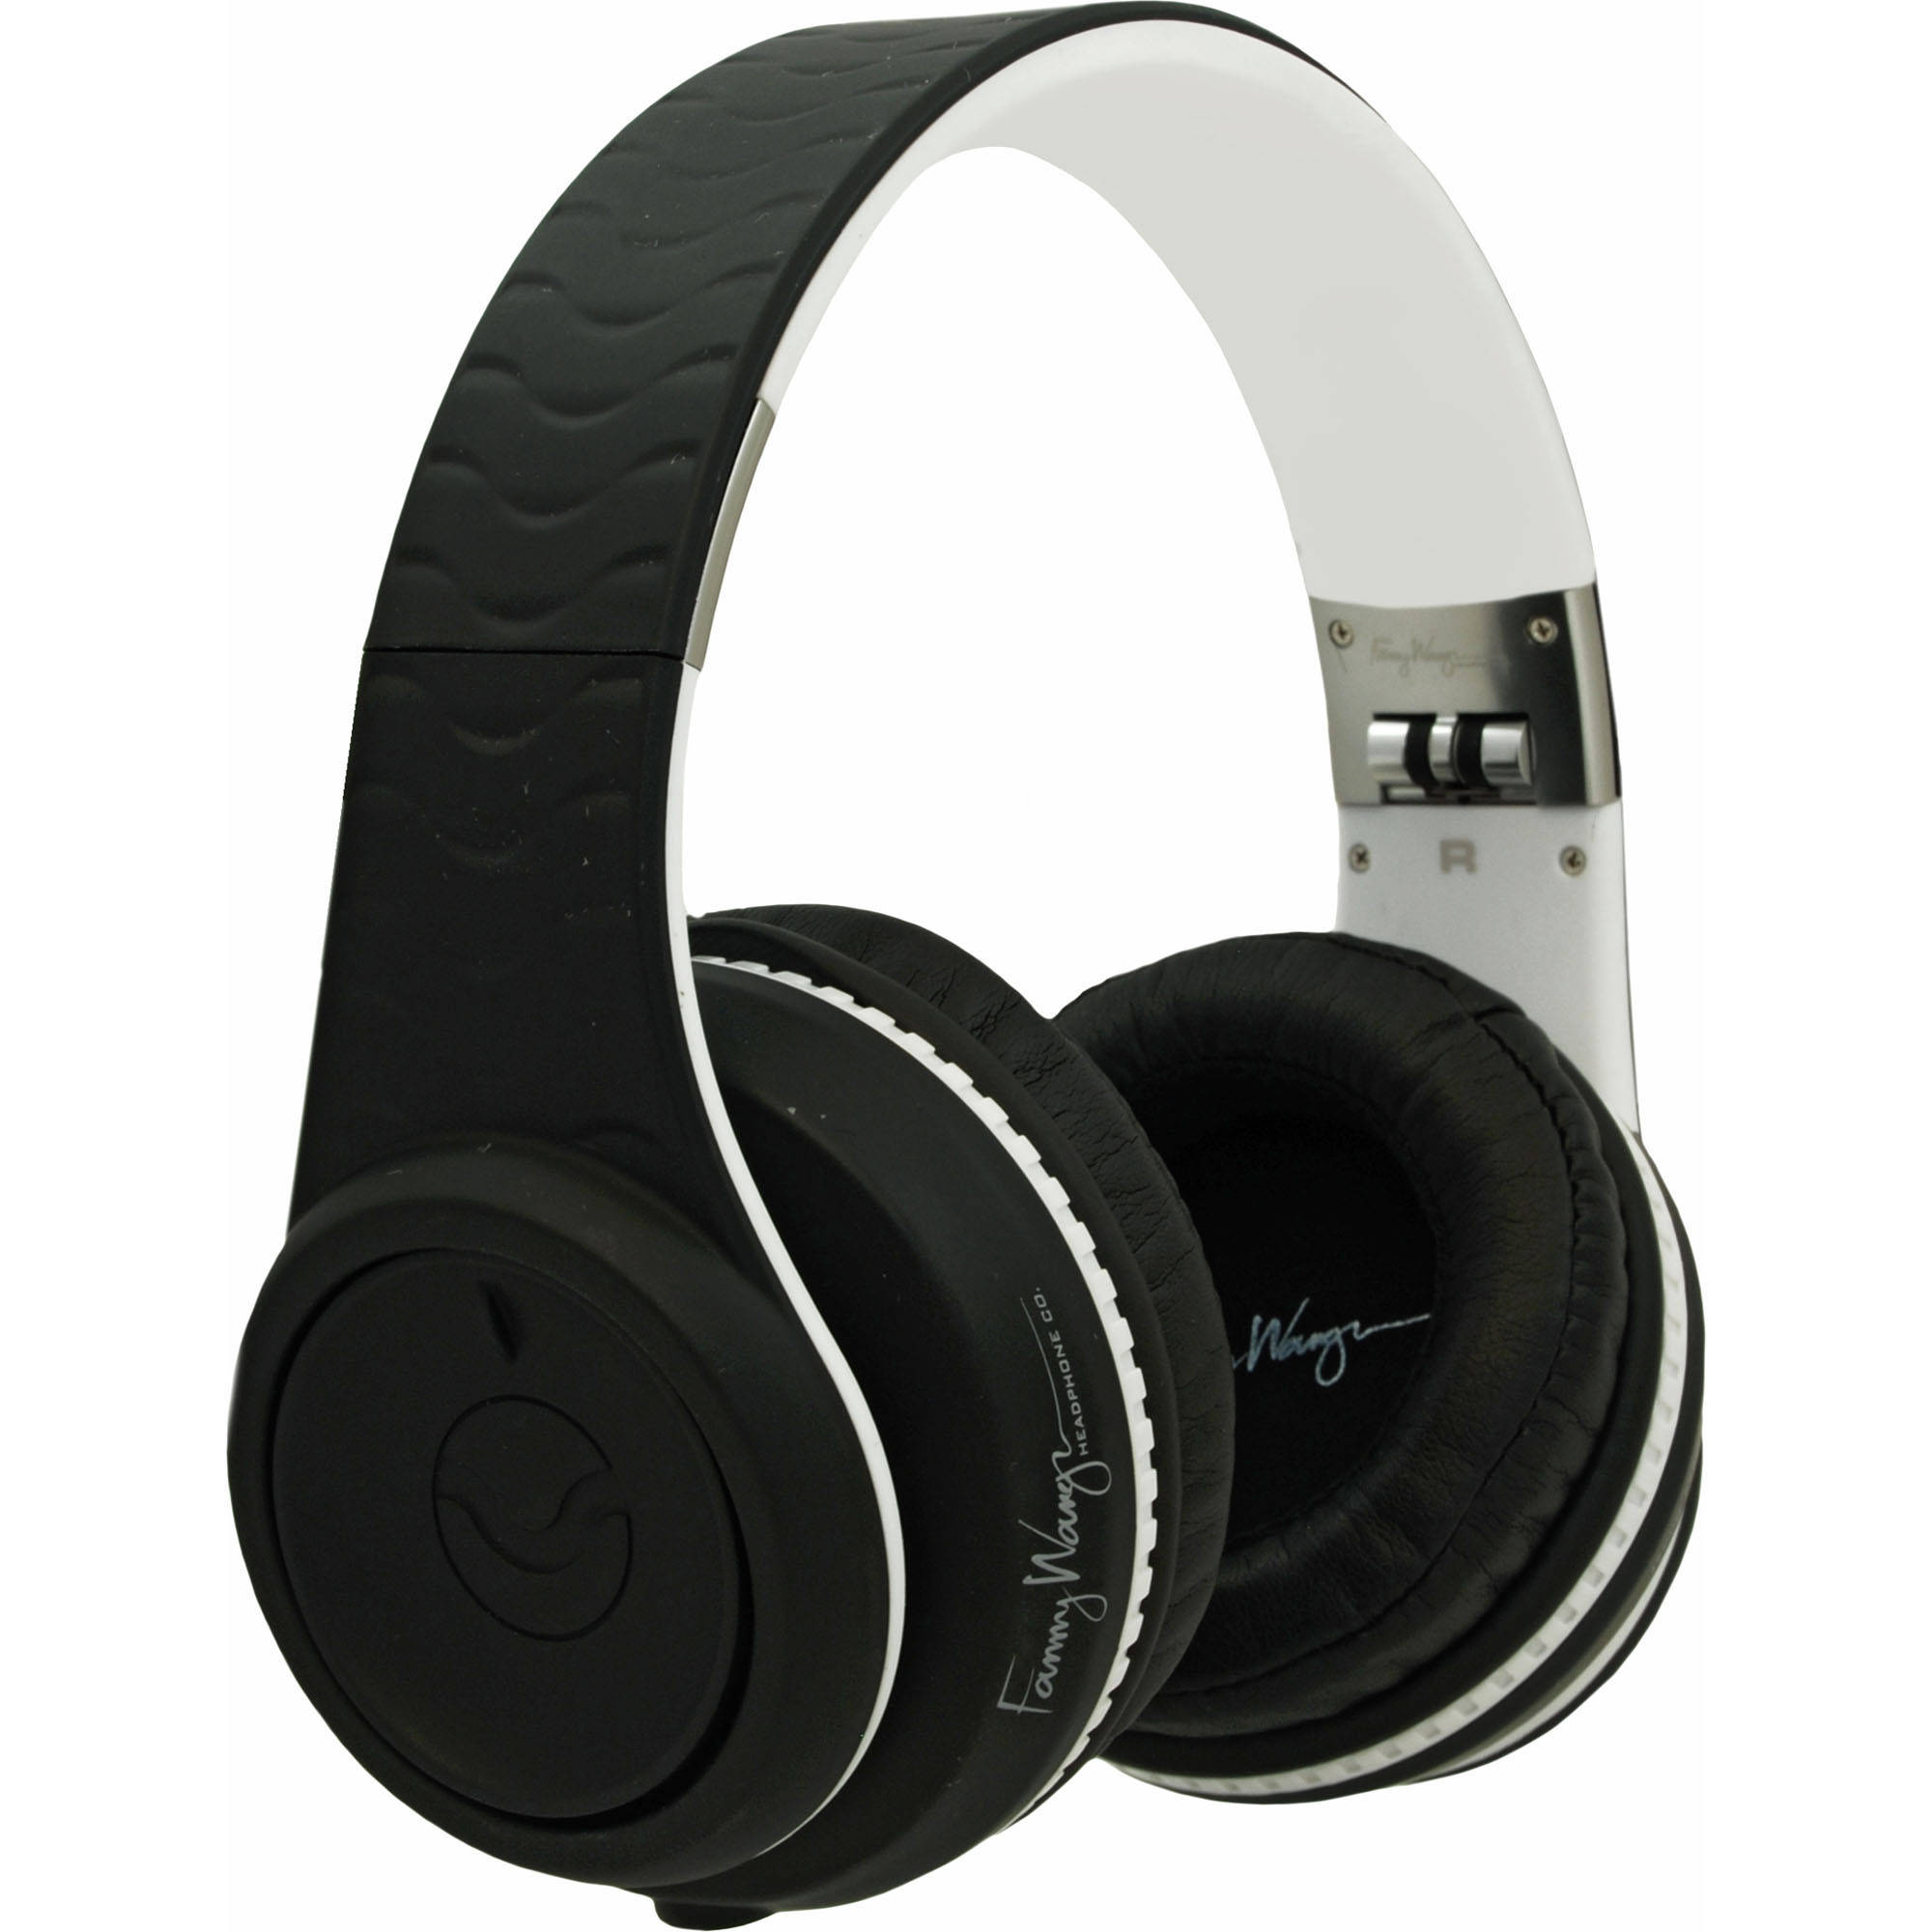 Apple headphones Iowa - DUOPRO OVER-THE-EAR HEADSET . Overview